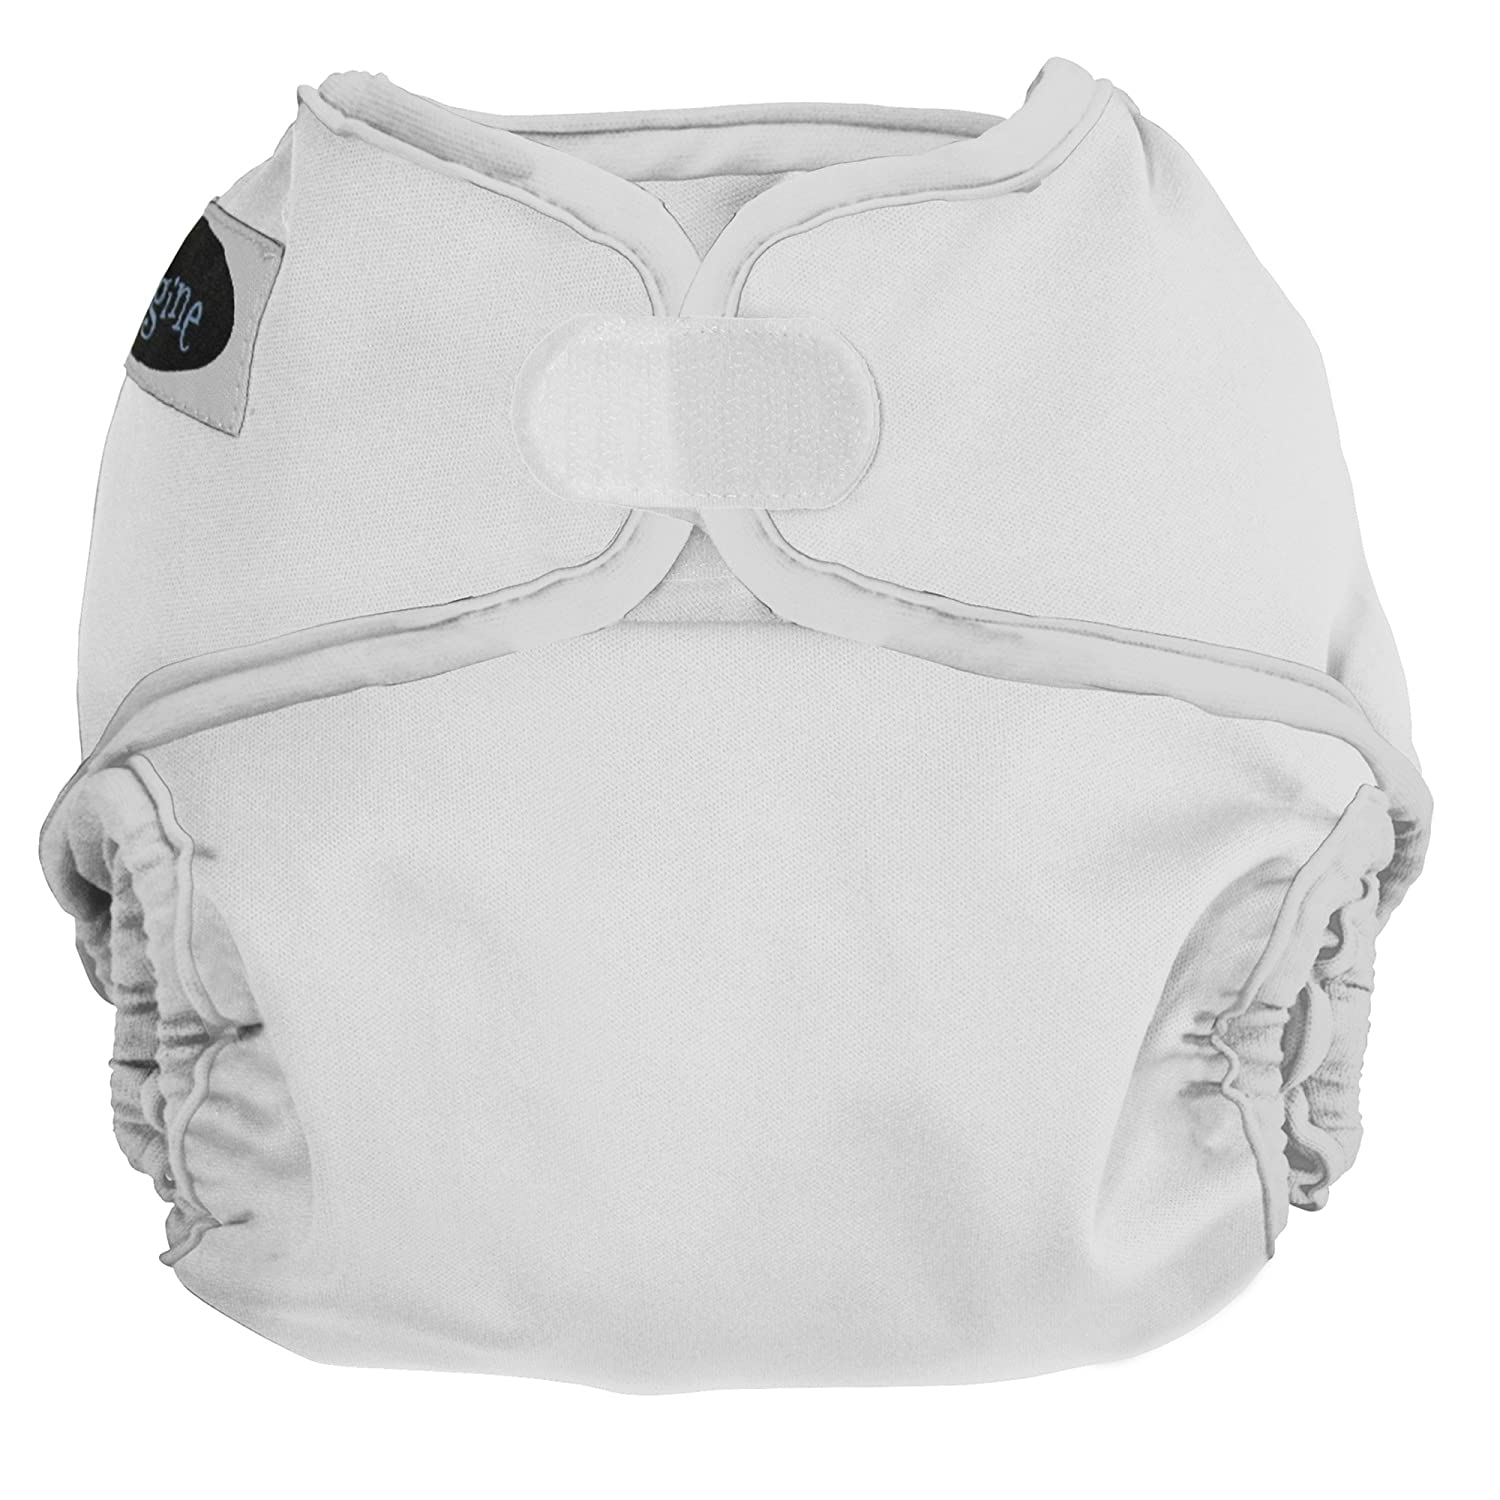 Imagine Baby Products Hook and Loop Diaper Cover, Snow by Imagine Baby Products   B00FLXNKX0